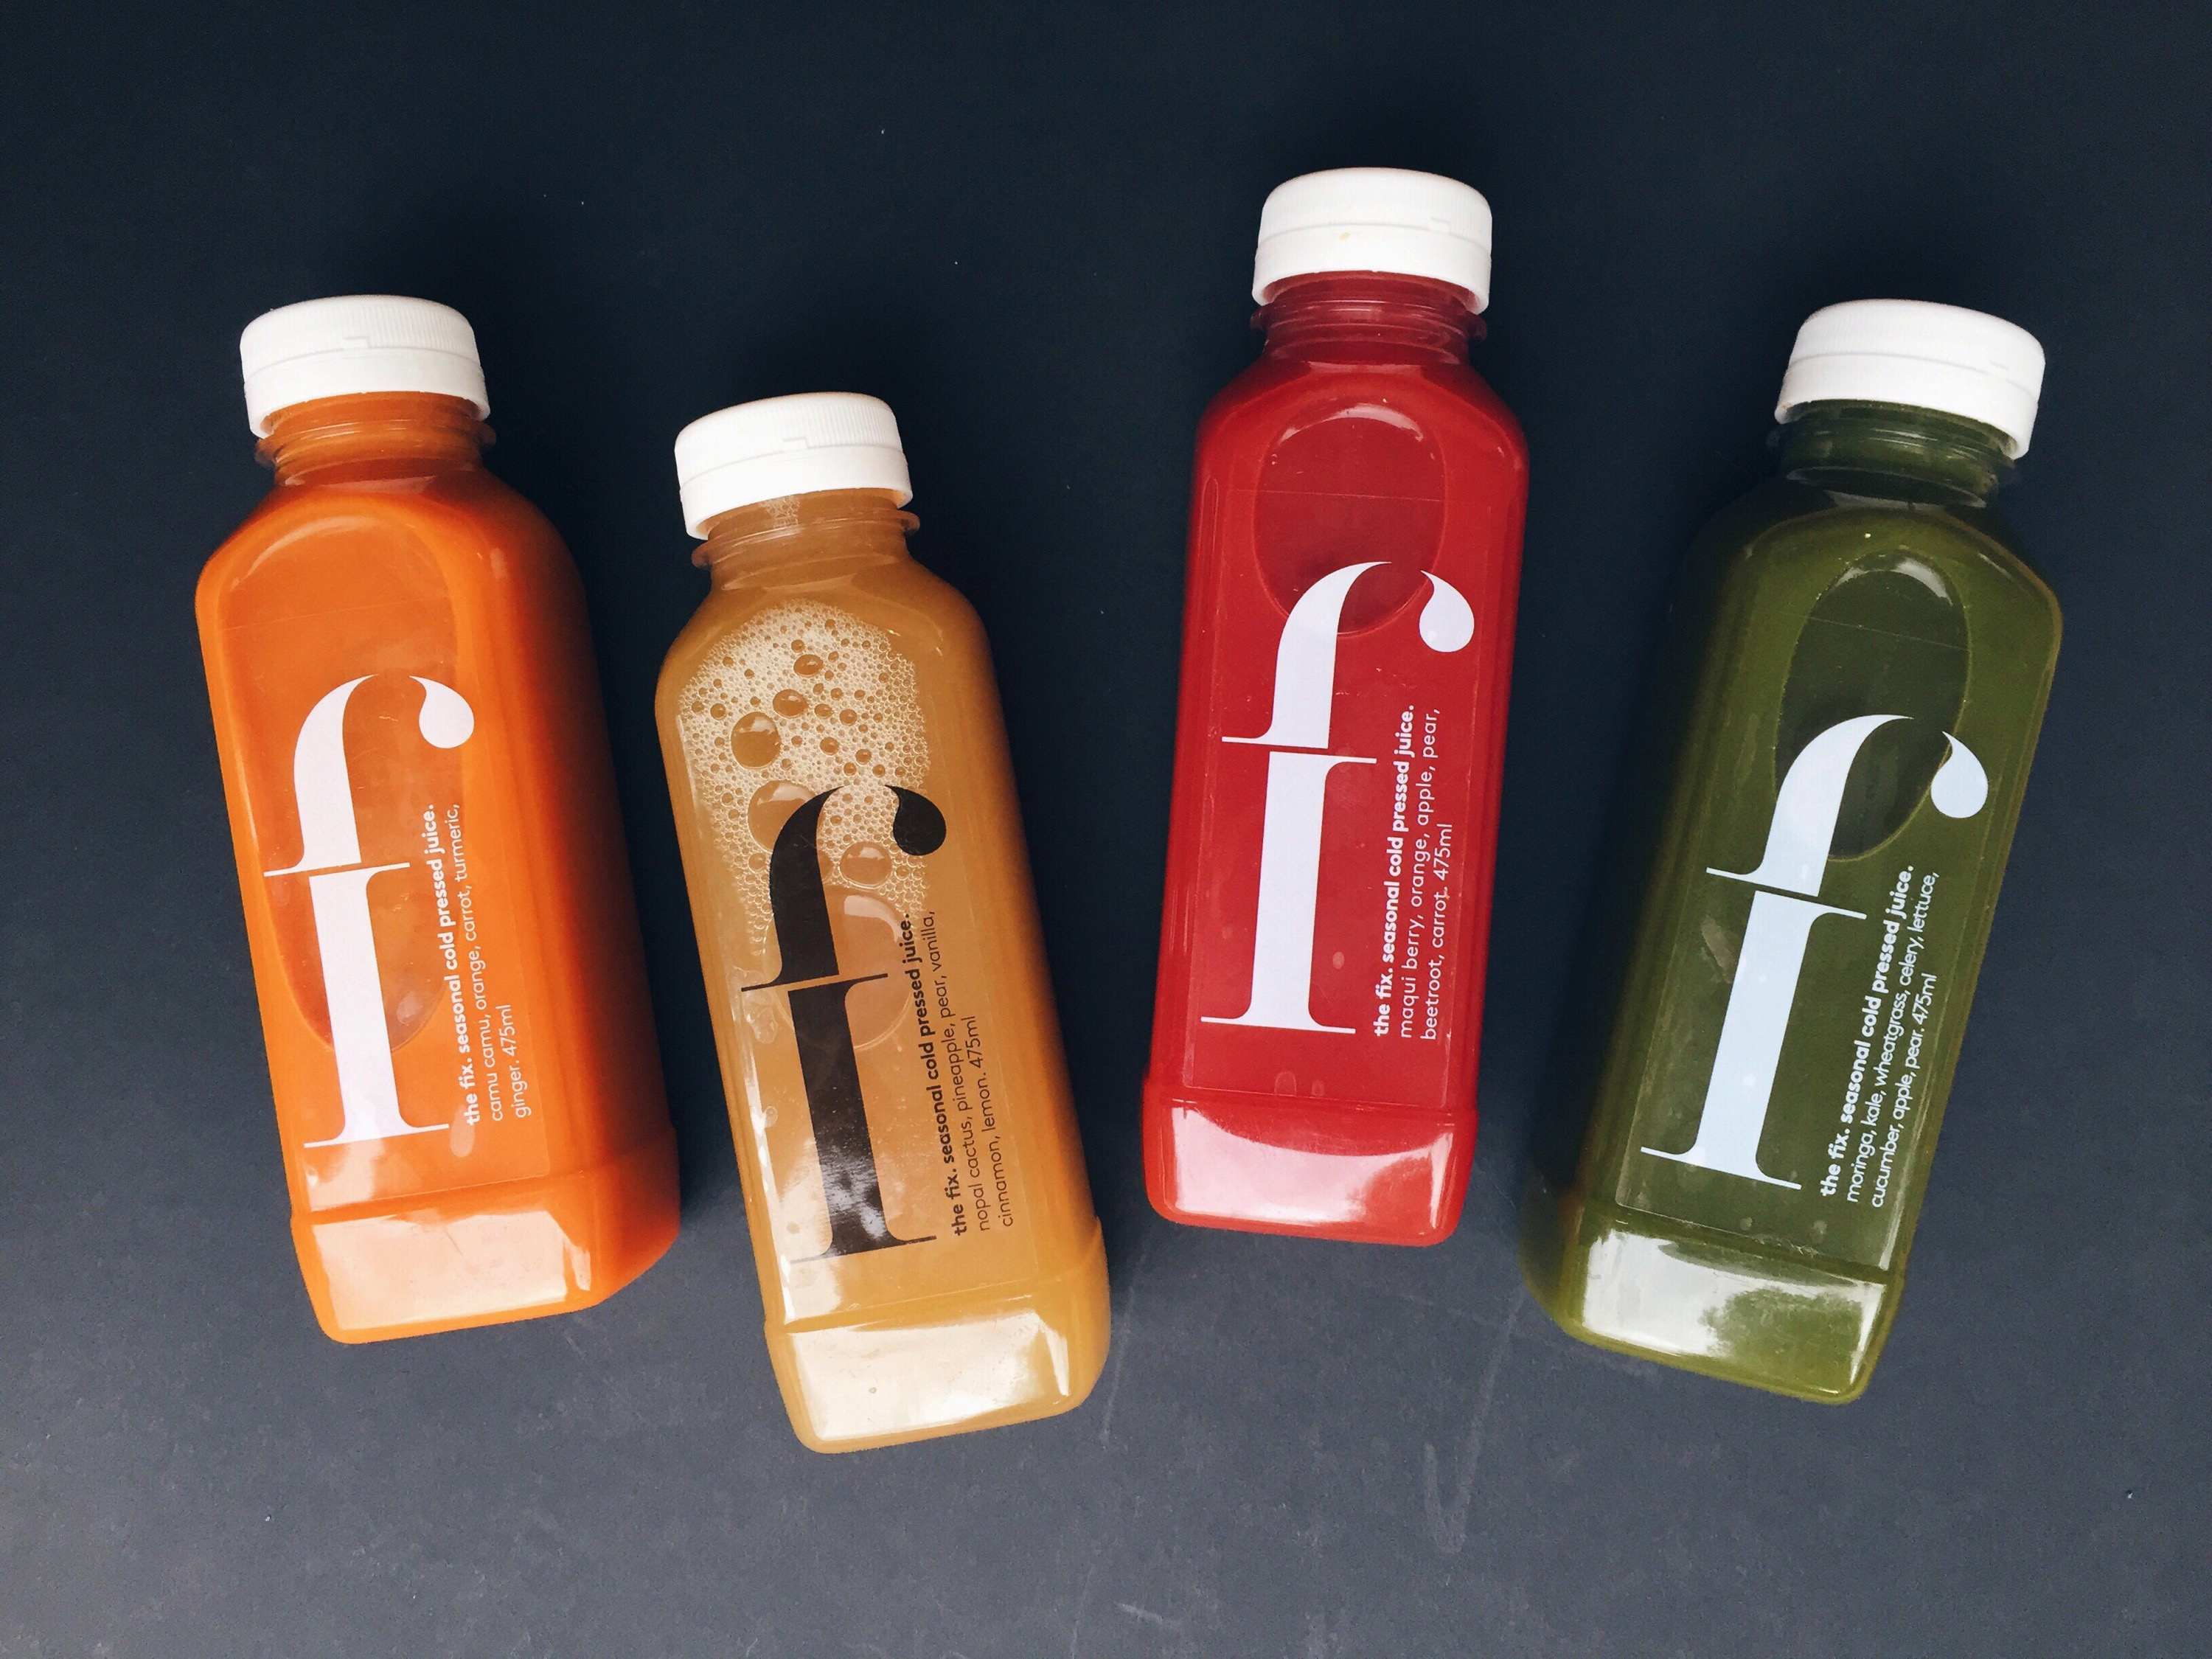 Innovative Juices